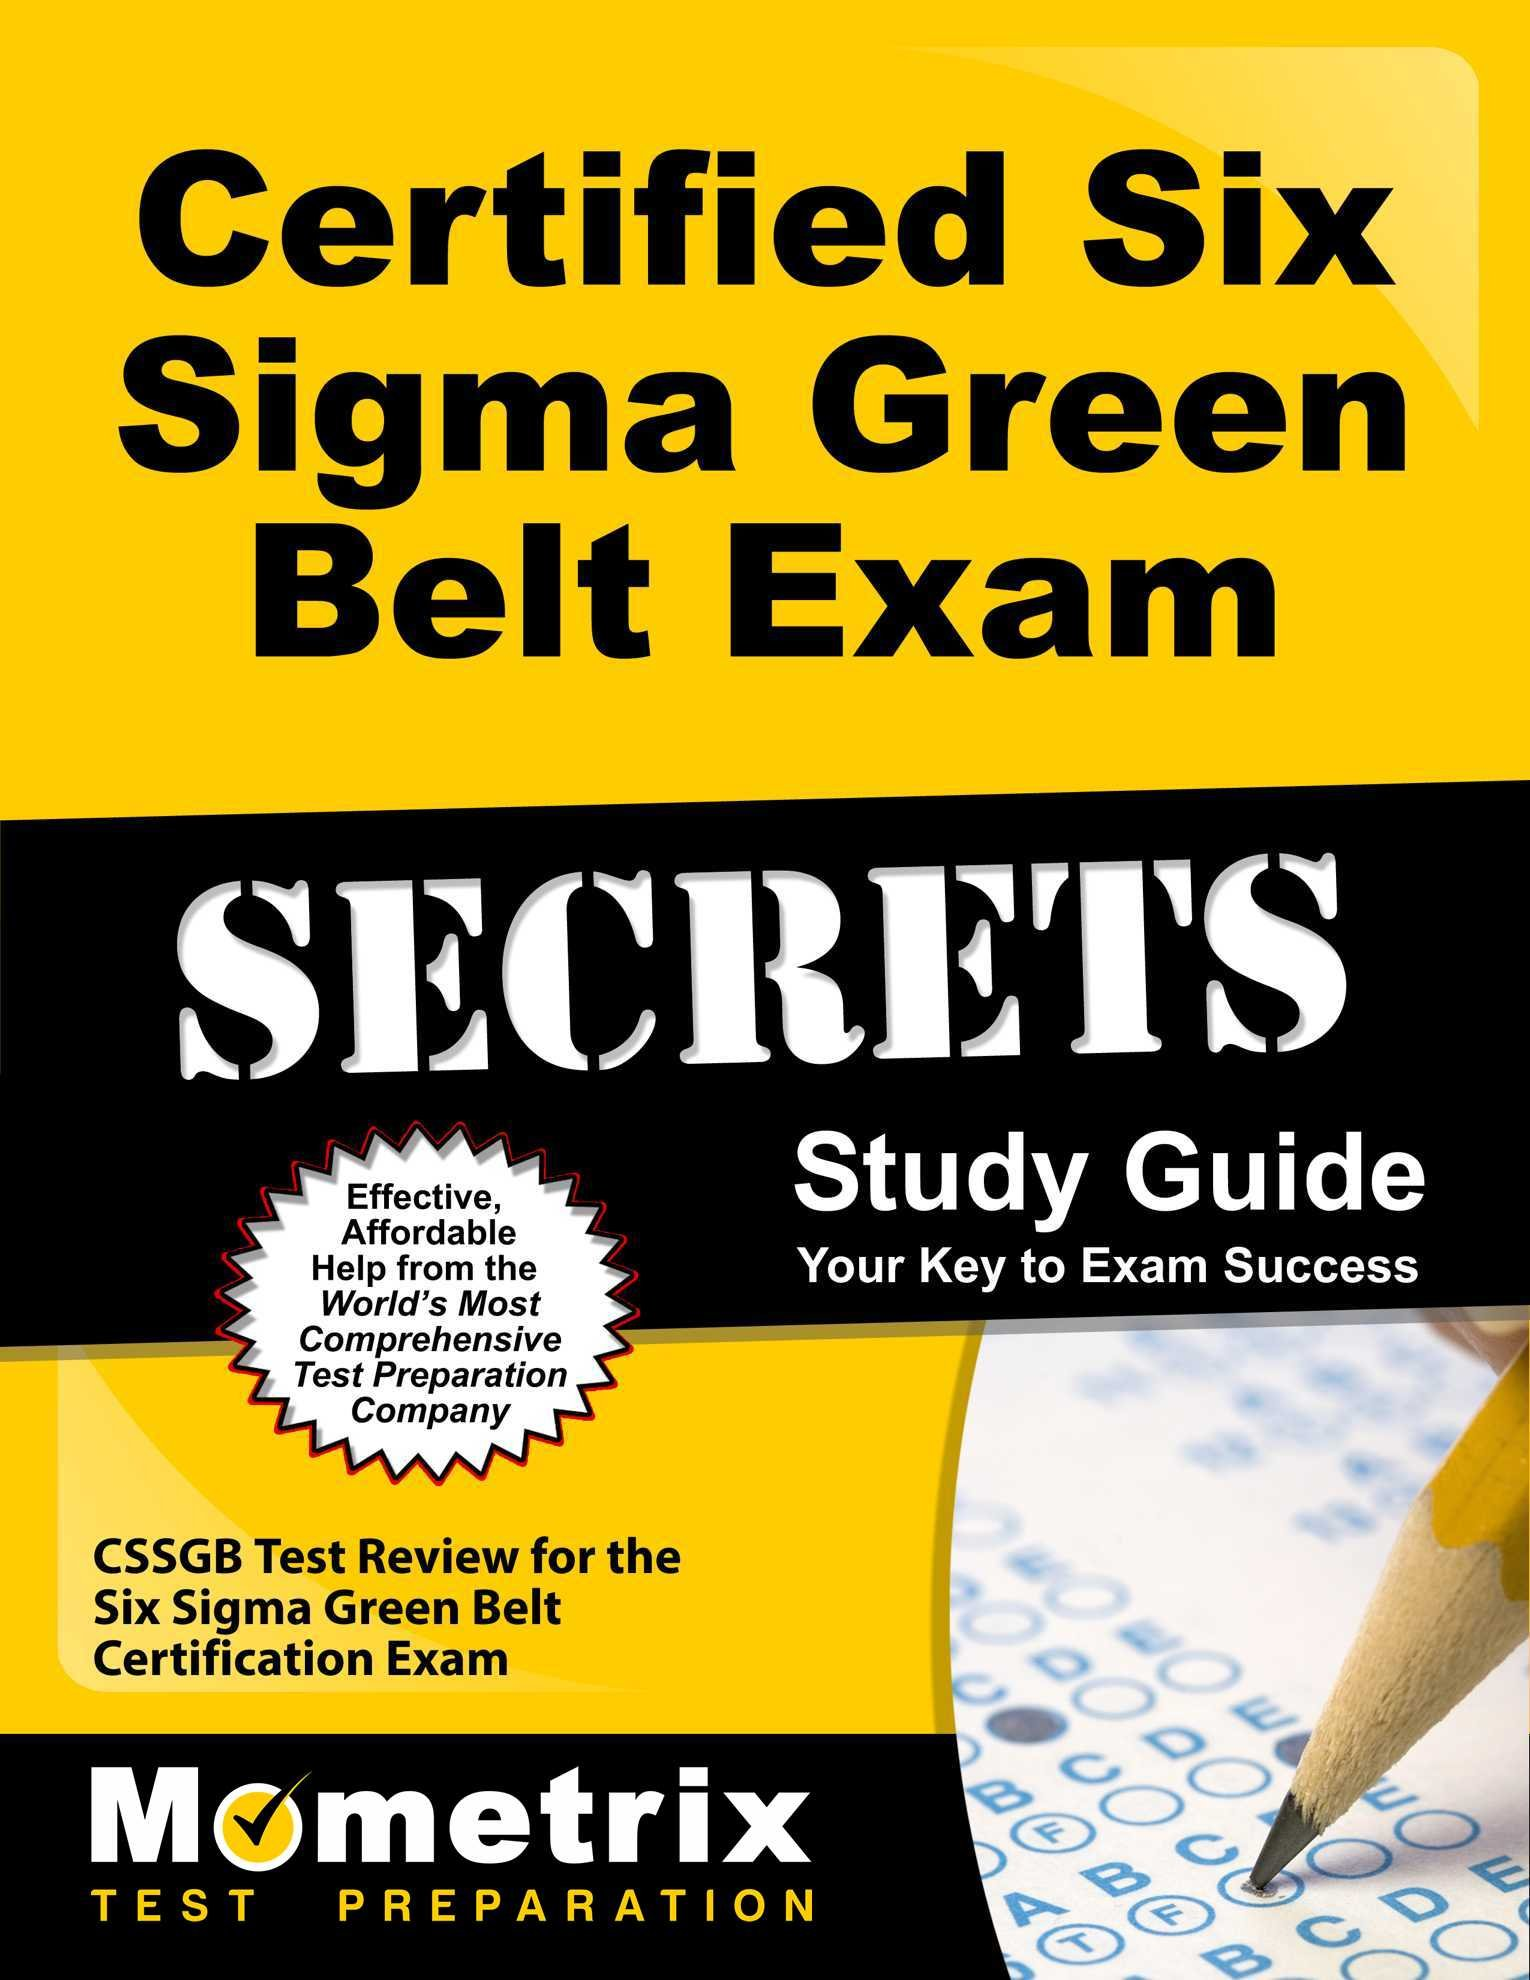 Buy Certified Six Sigma Green Belt Exam Secrets Cssgb Test Review